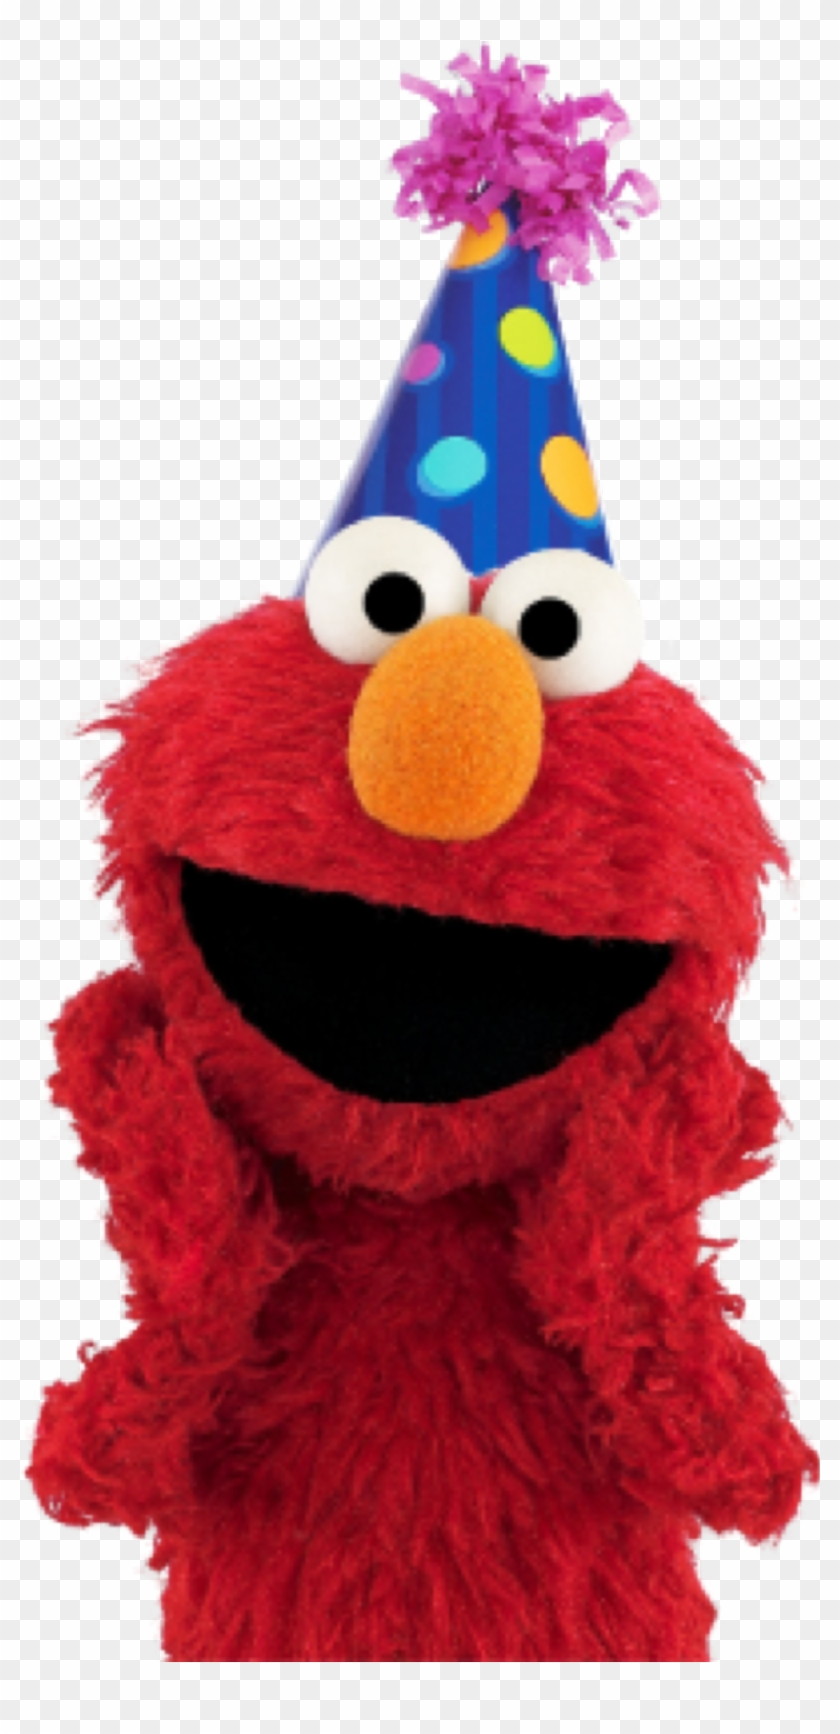 Elmo With Birthday Hat, HD Png Download.